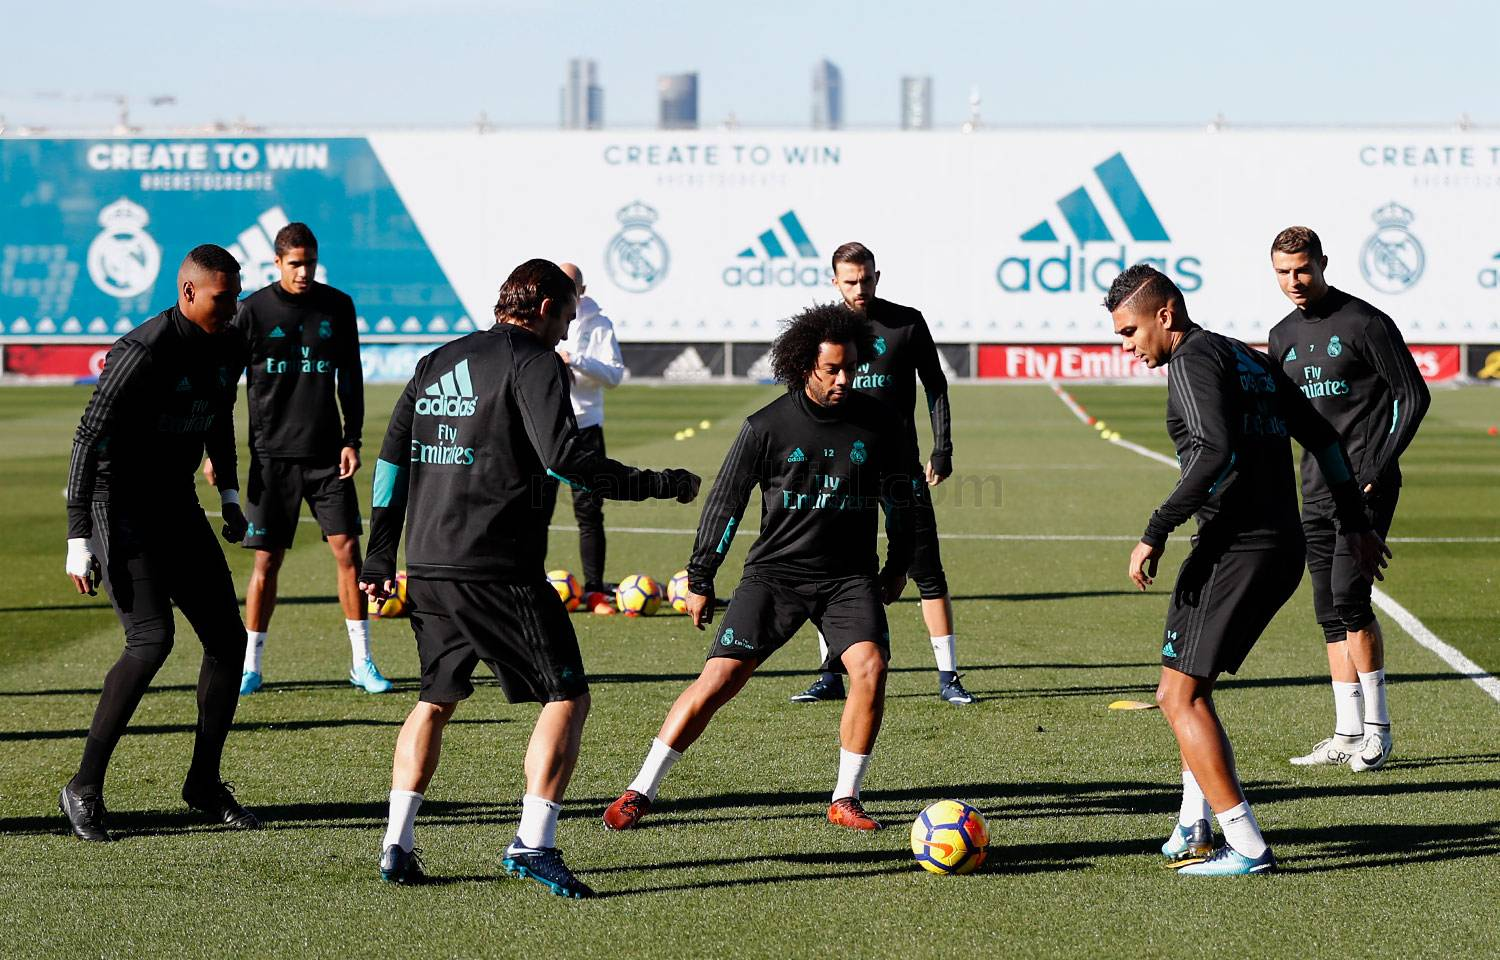 Real Madrid - Entrenamiento del Real Madrid - 17-11-2017